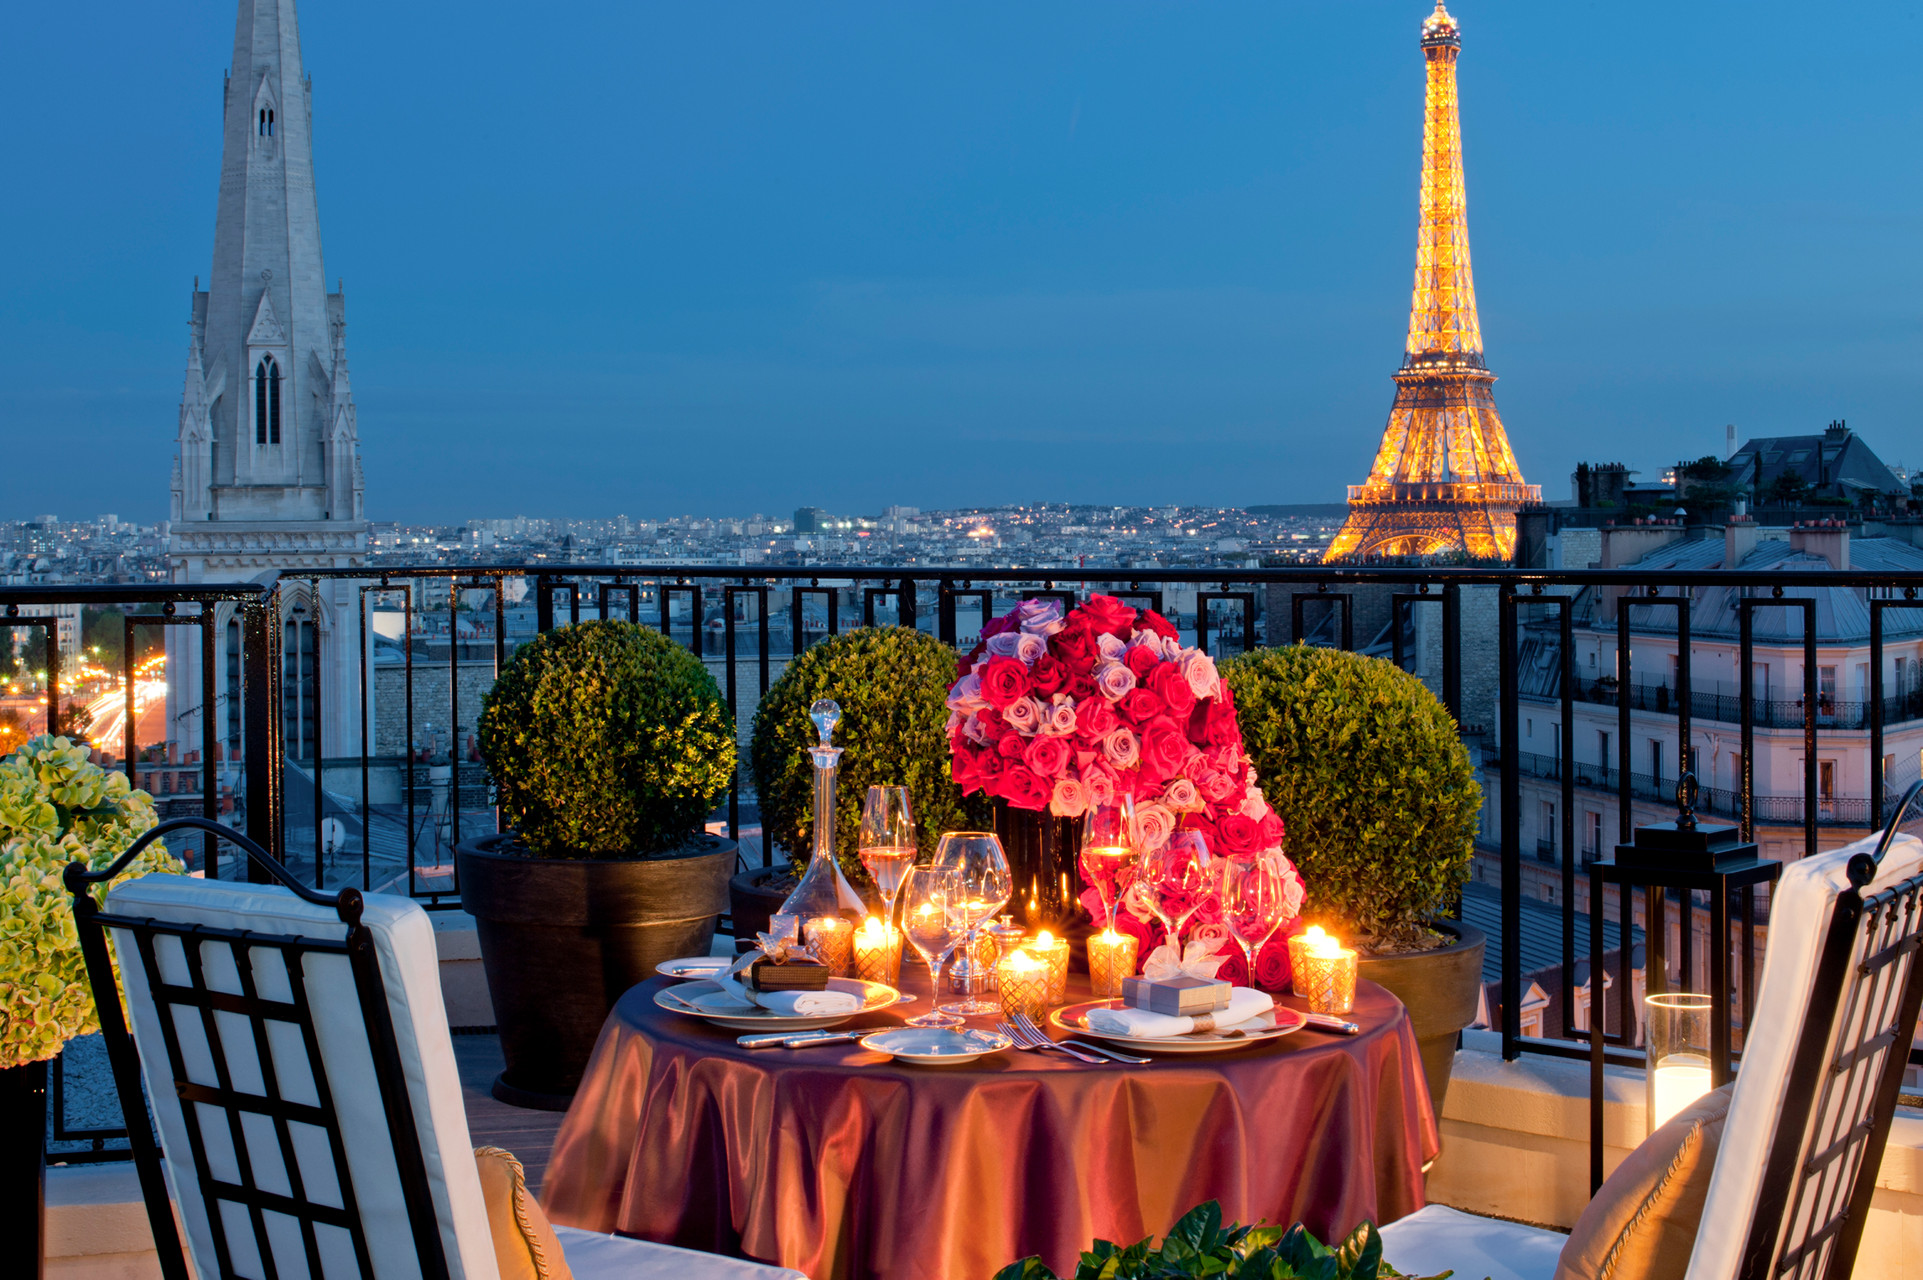 Luxury Travel: 5 Reasons Why Paris Should Be Your Next Destination dining room table ideas Top 3 Dining Room Table Ideas for a Luxurious Valentine's Day luxury travel reasons why paris next destination valentines day dining room table ideas Top 3 Dining Room Table Ideas for a Luxurious Valentine's Day luxury travel reasons why paris next destination valentines day